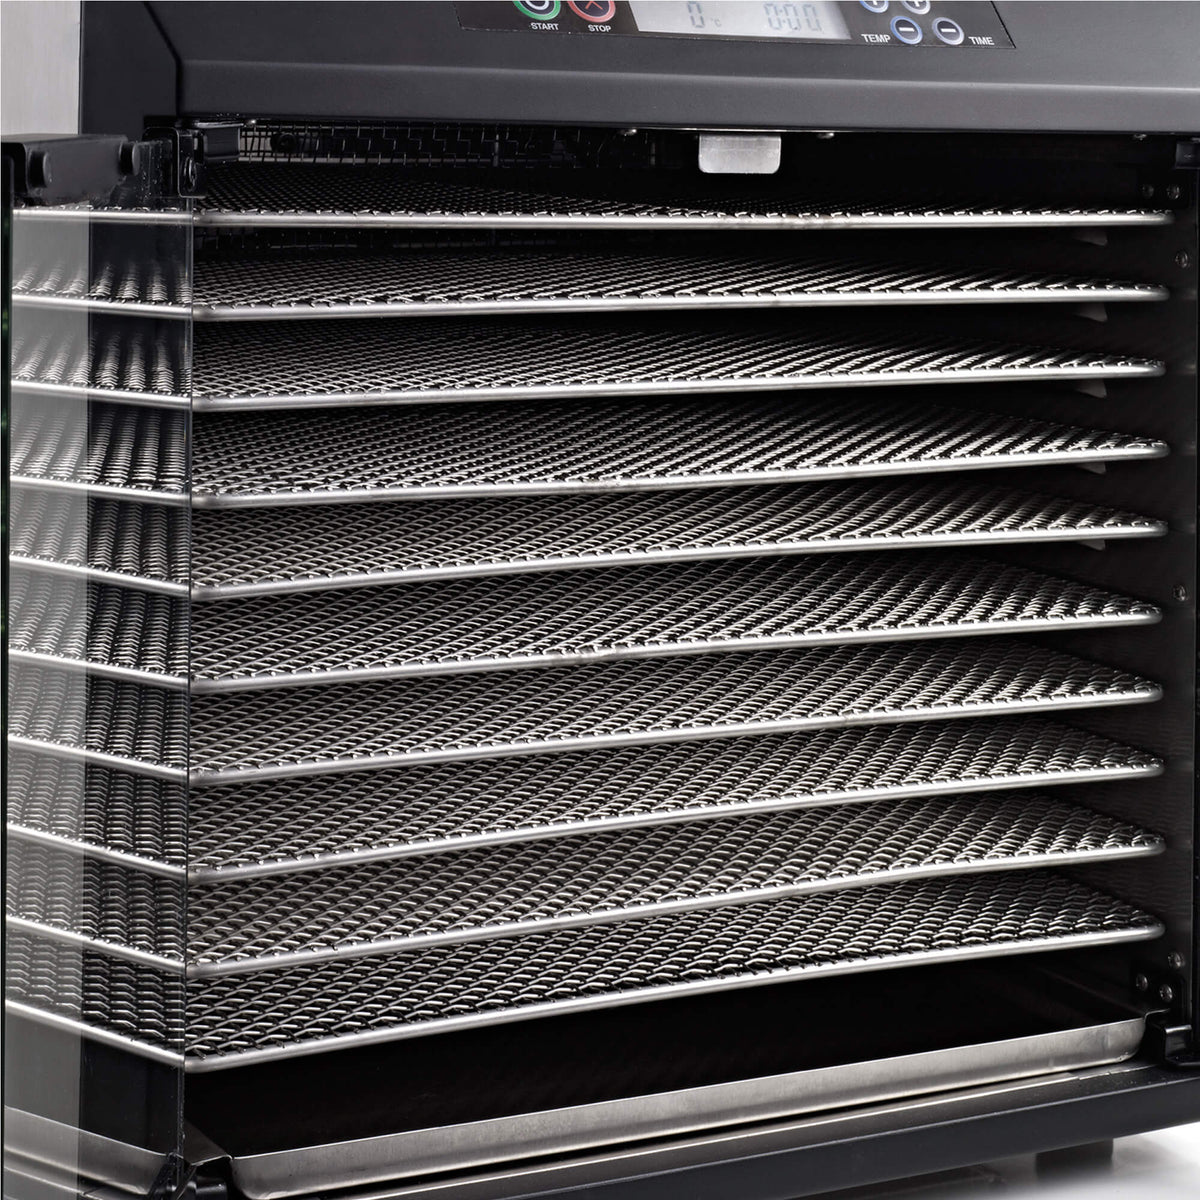 Excalibur EXC10EL 10 tray stainless steel digital dehydrator trays.